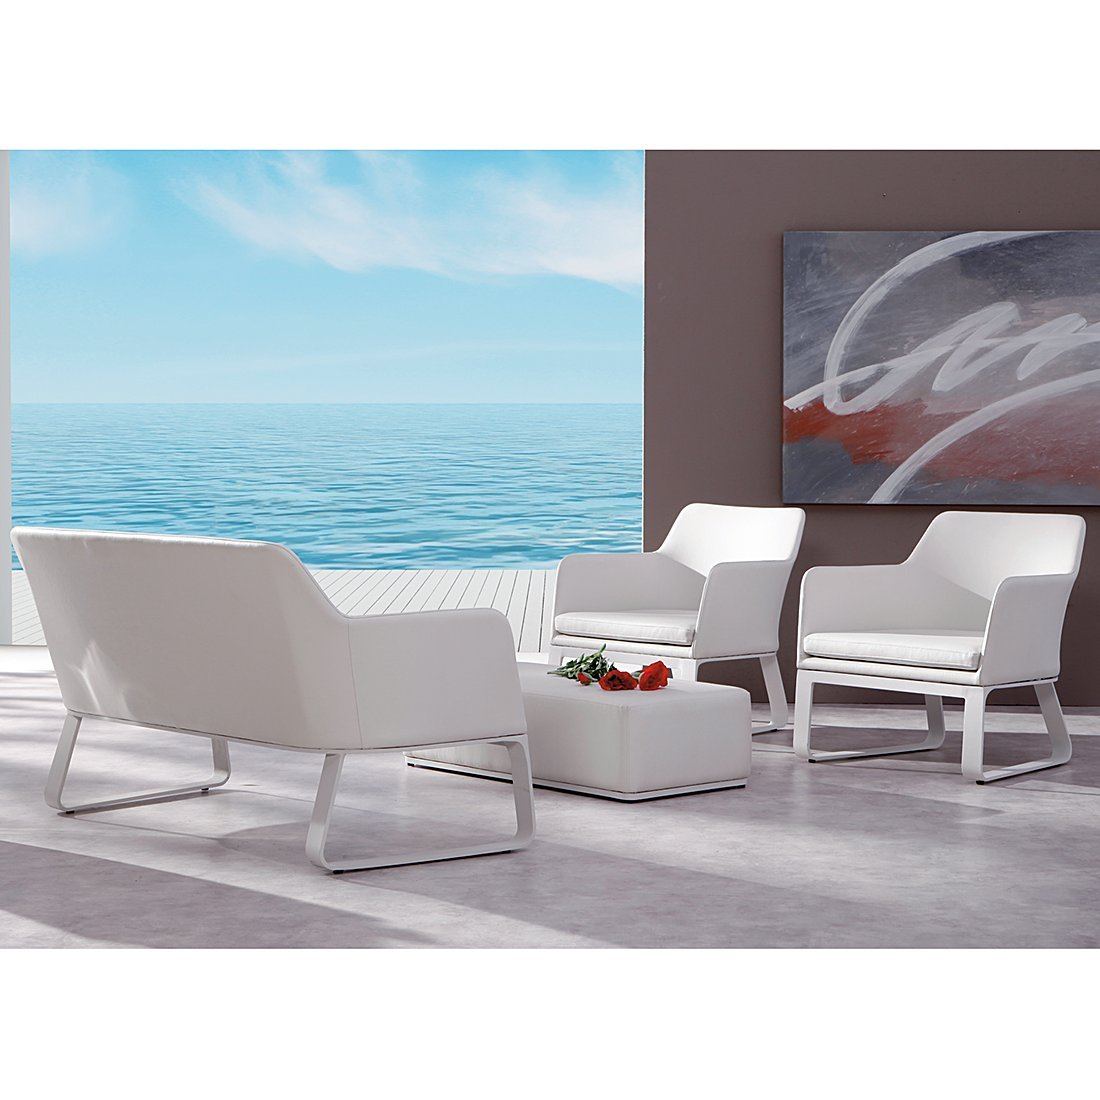 BEST 94140004 4-teilig Loungegruppe Chicago